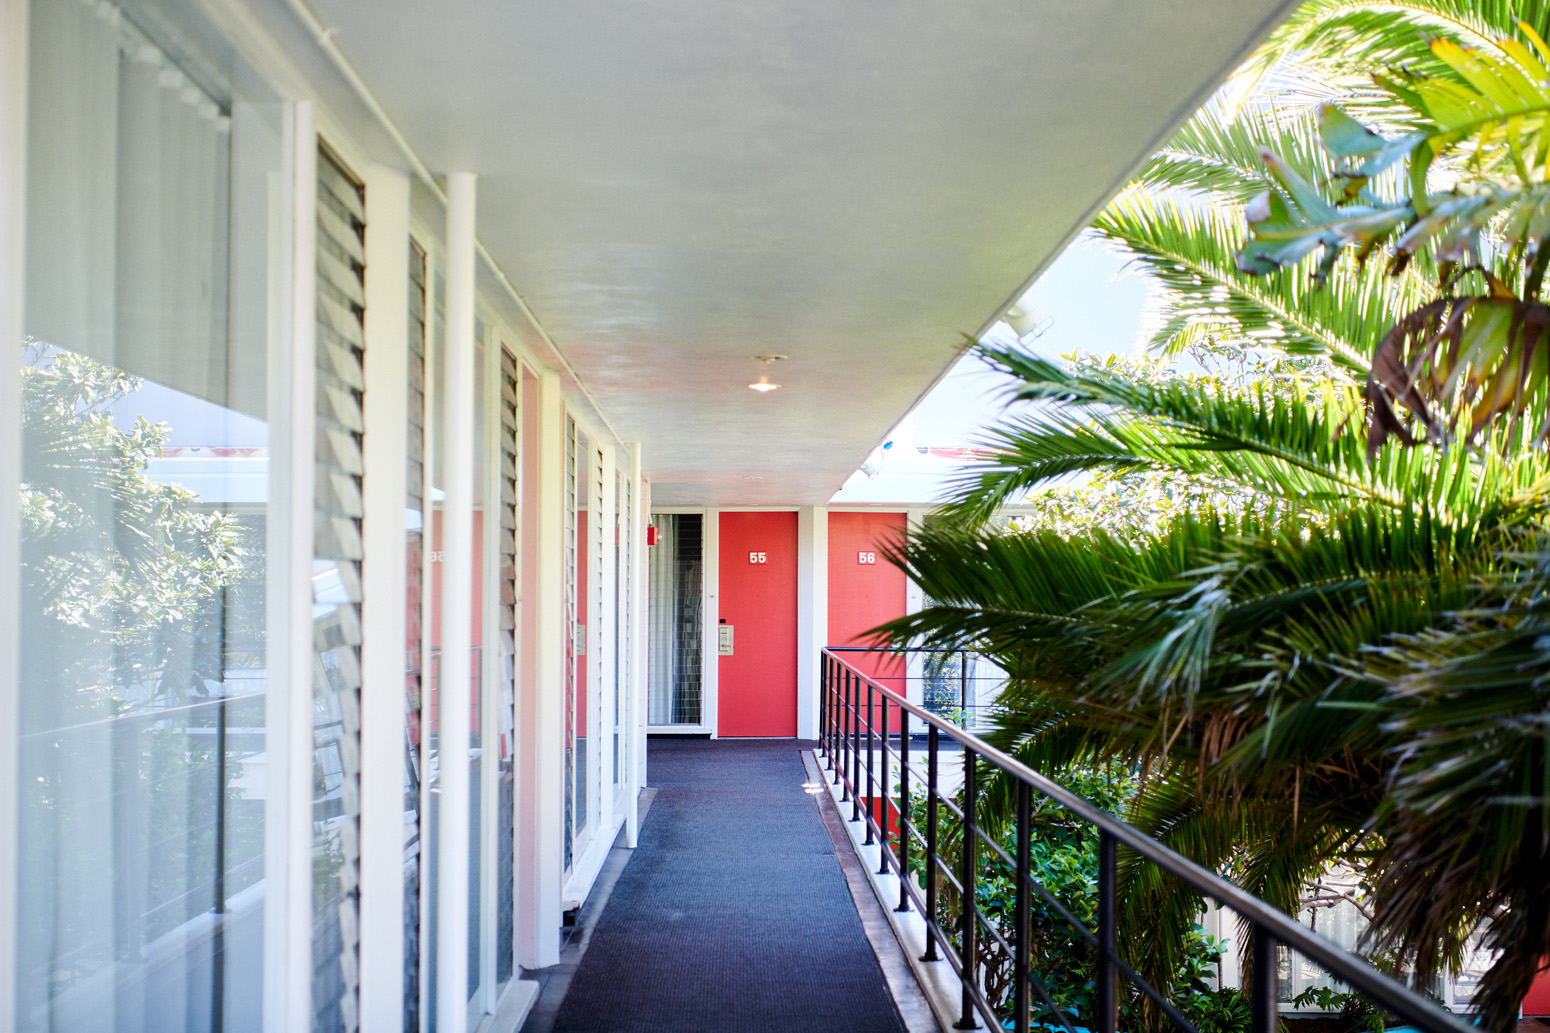 Daytime exterior view of red hotel room doors